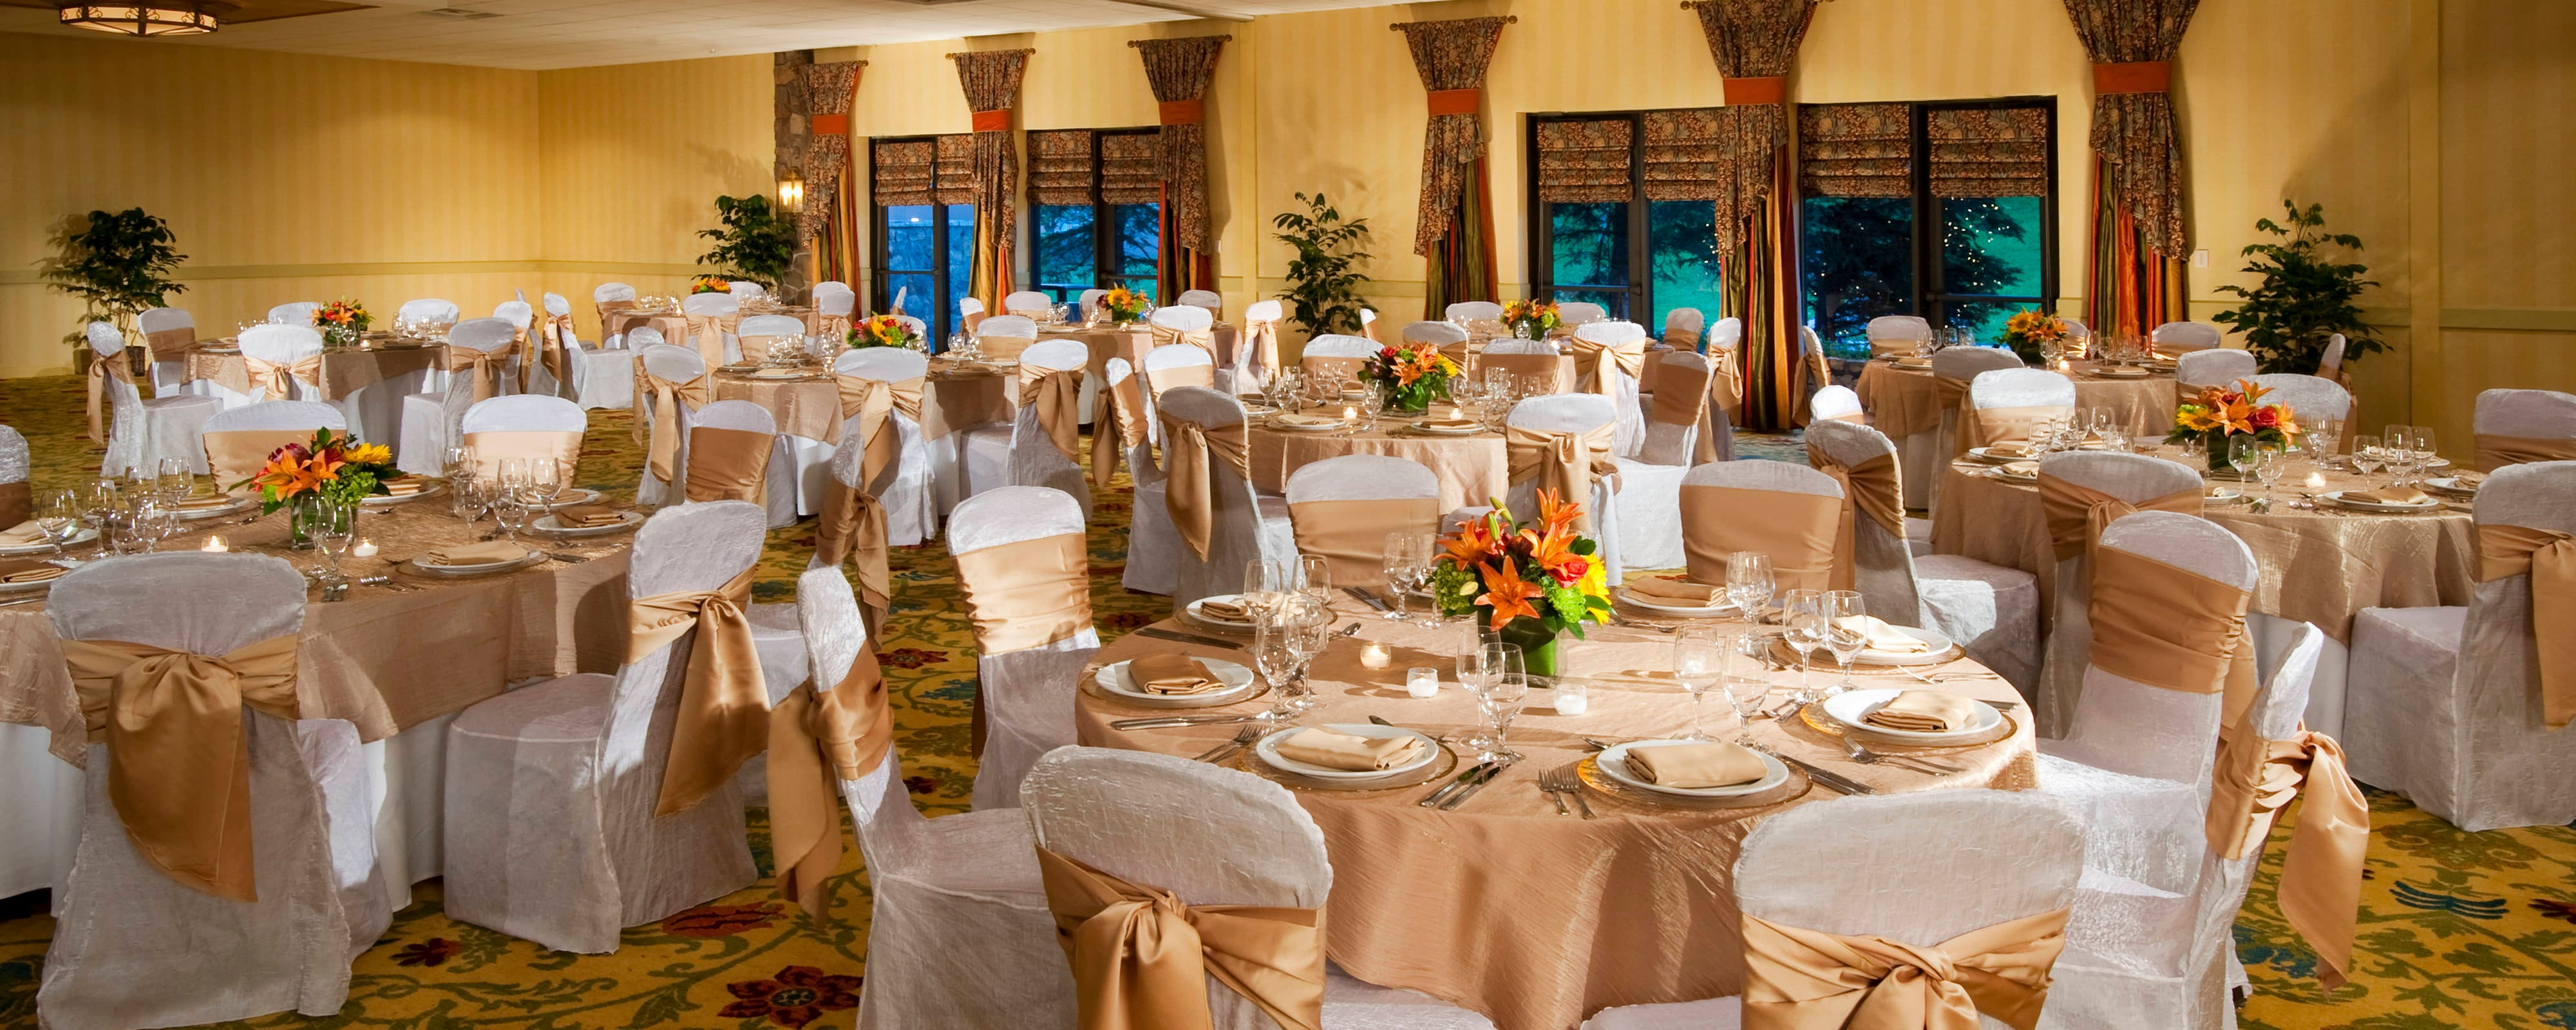 Vail Colorado Wedding Venues Packages Vail Marriott Mountain Resort